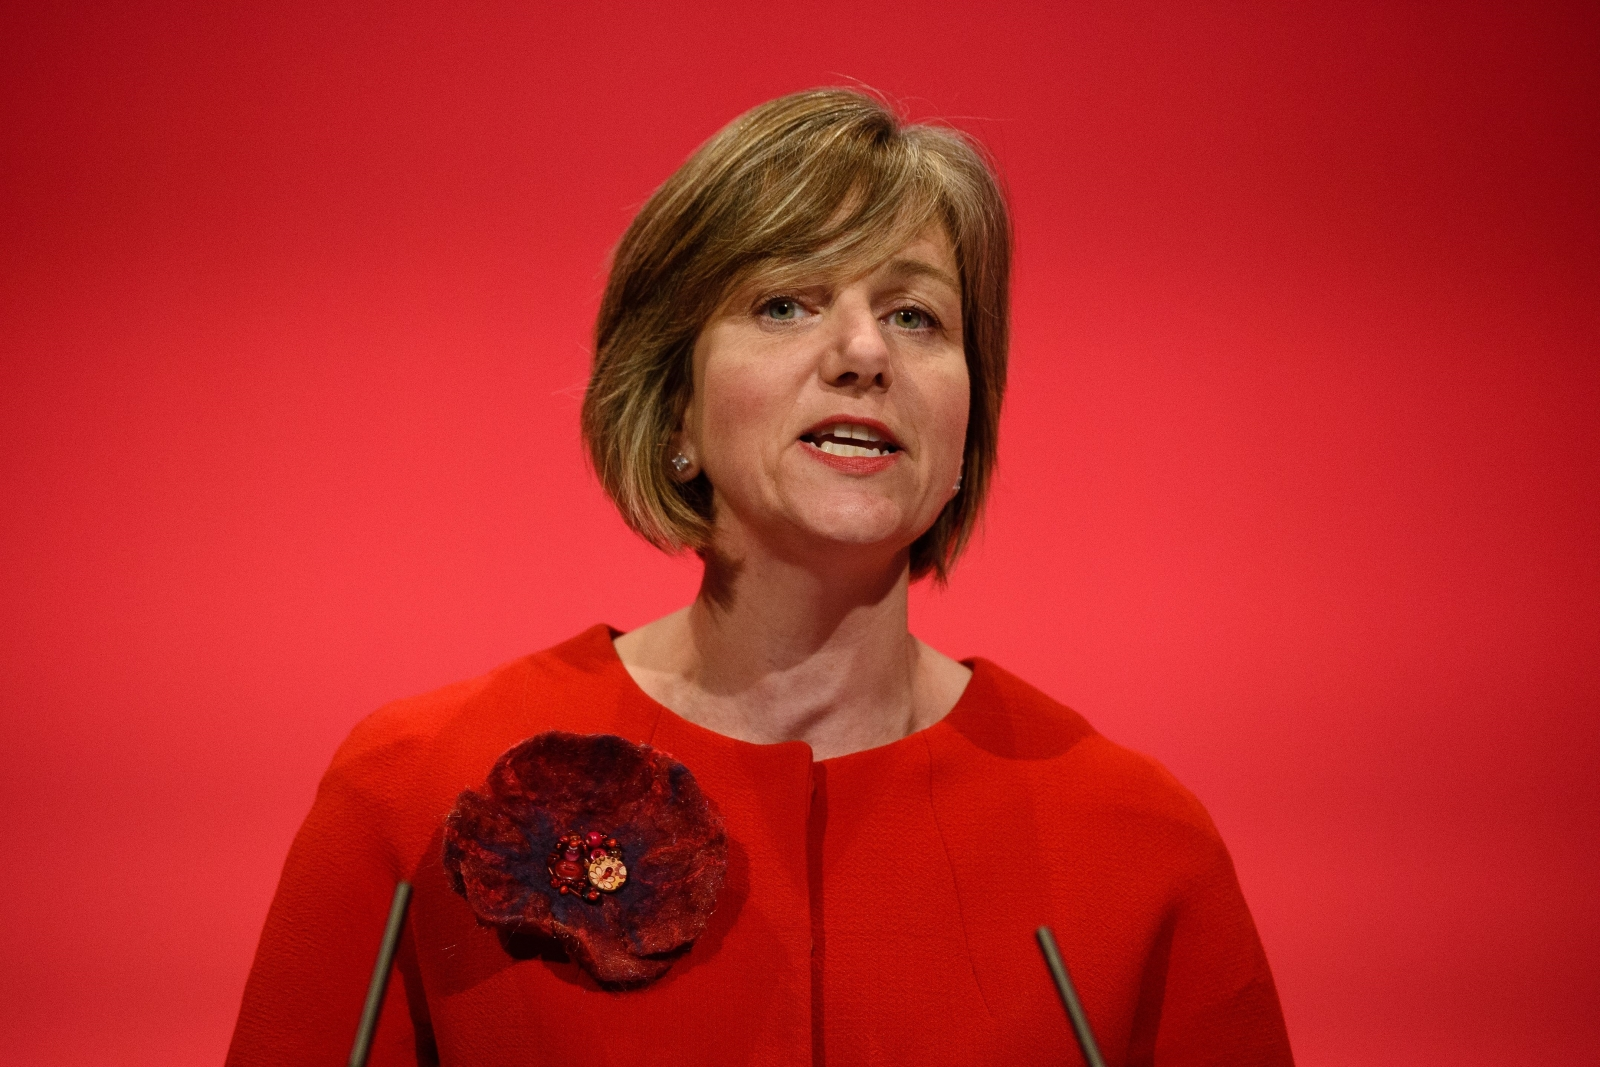 Lilian Greenwood Labour MP